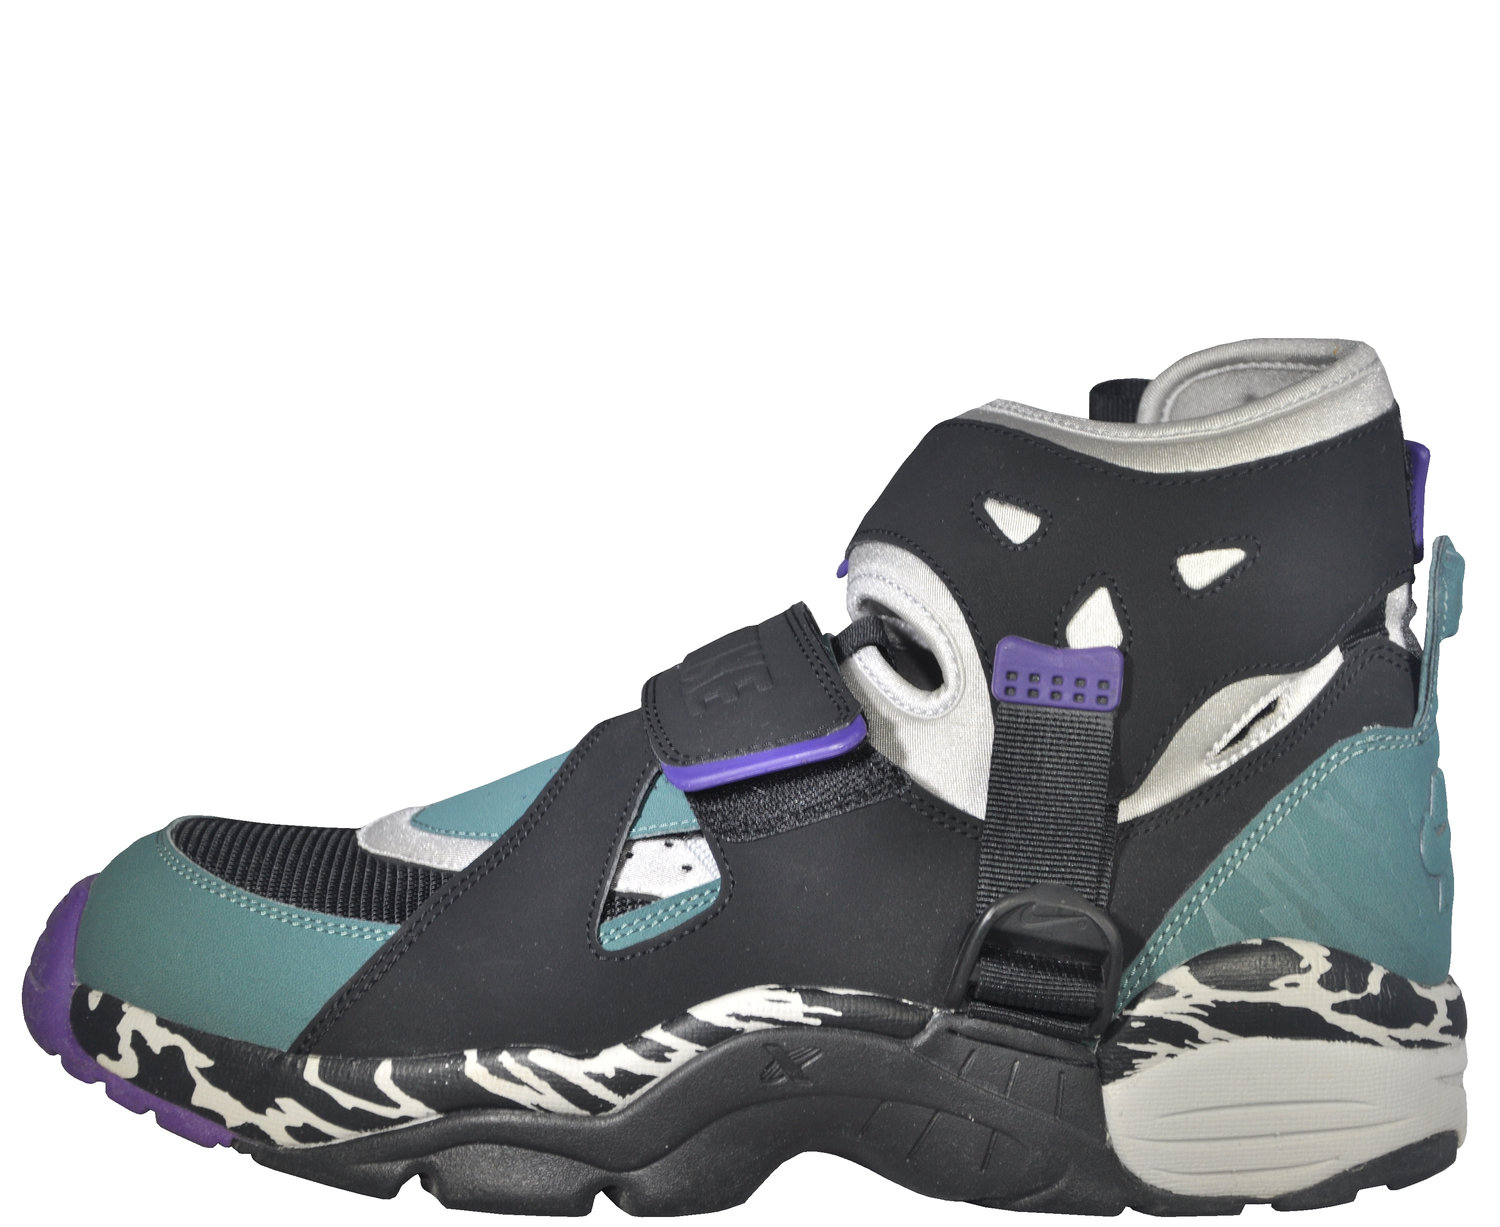 buy popular 74712 0ef7a Nike Air Carnivore Zen Grey   Black   Green (Size 10) — Roots